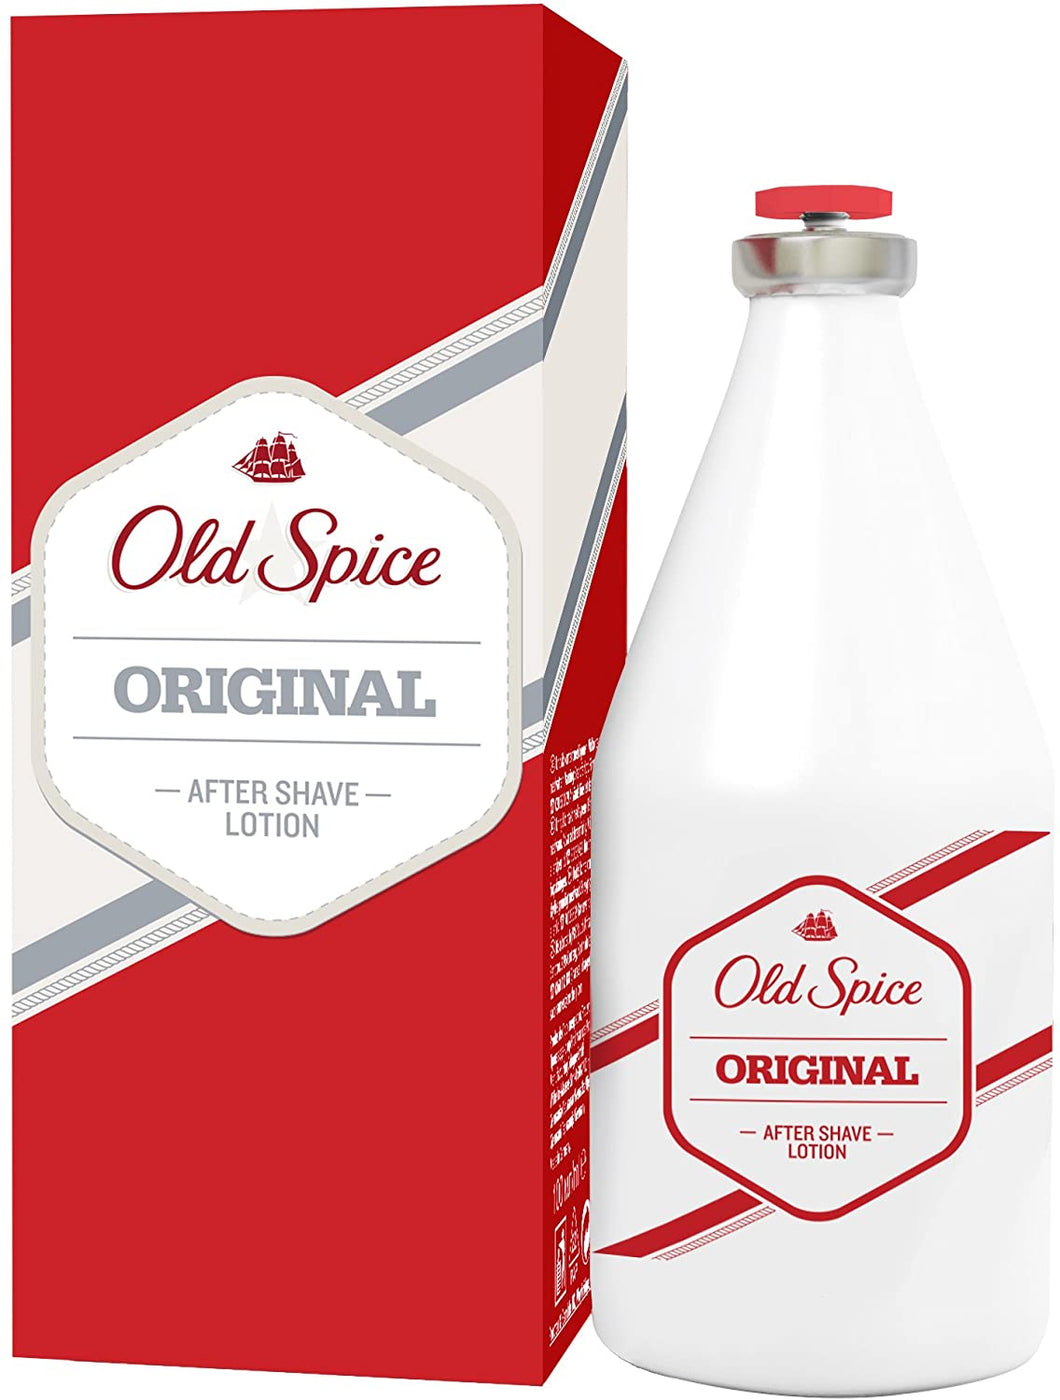 Old Spice After Shave Lotion